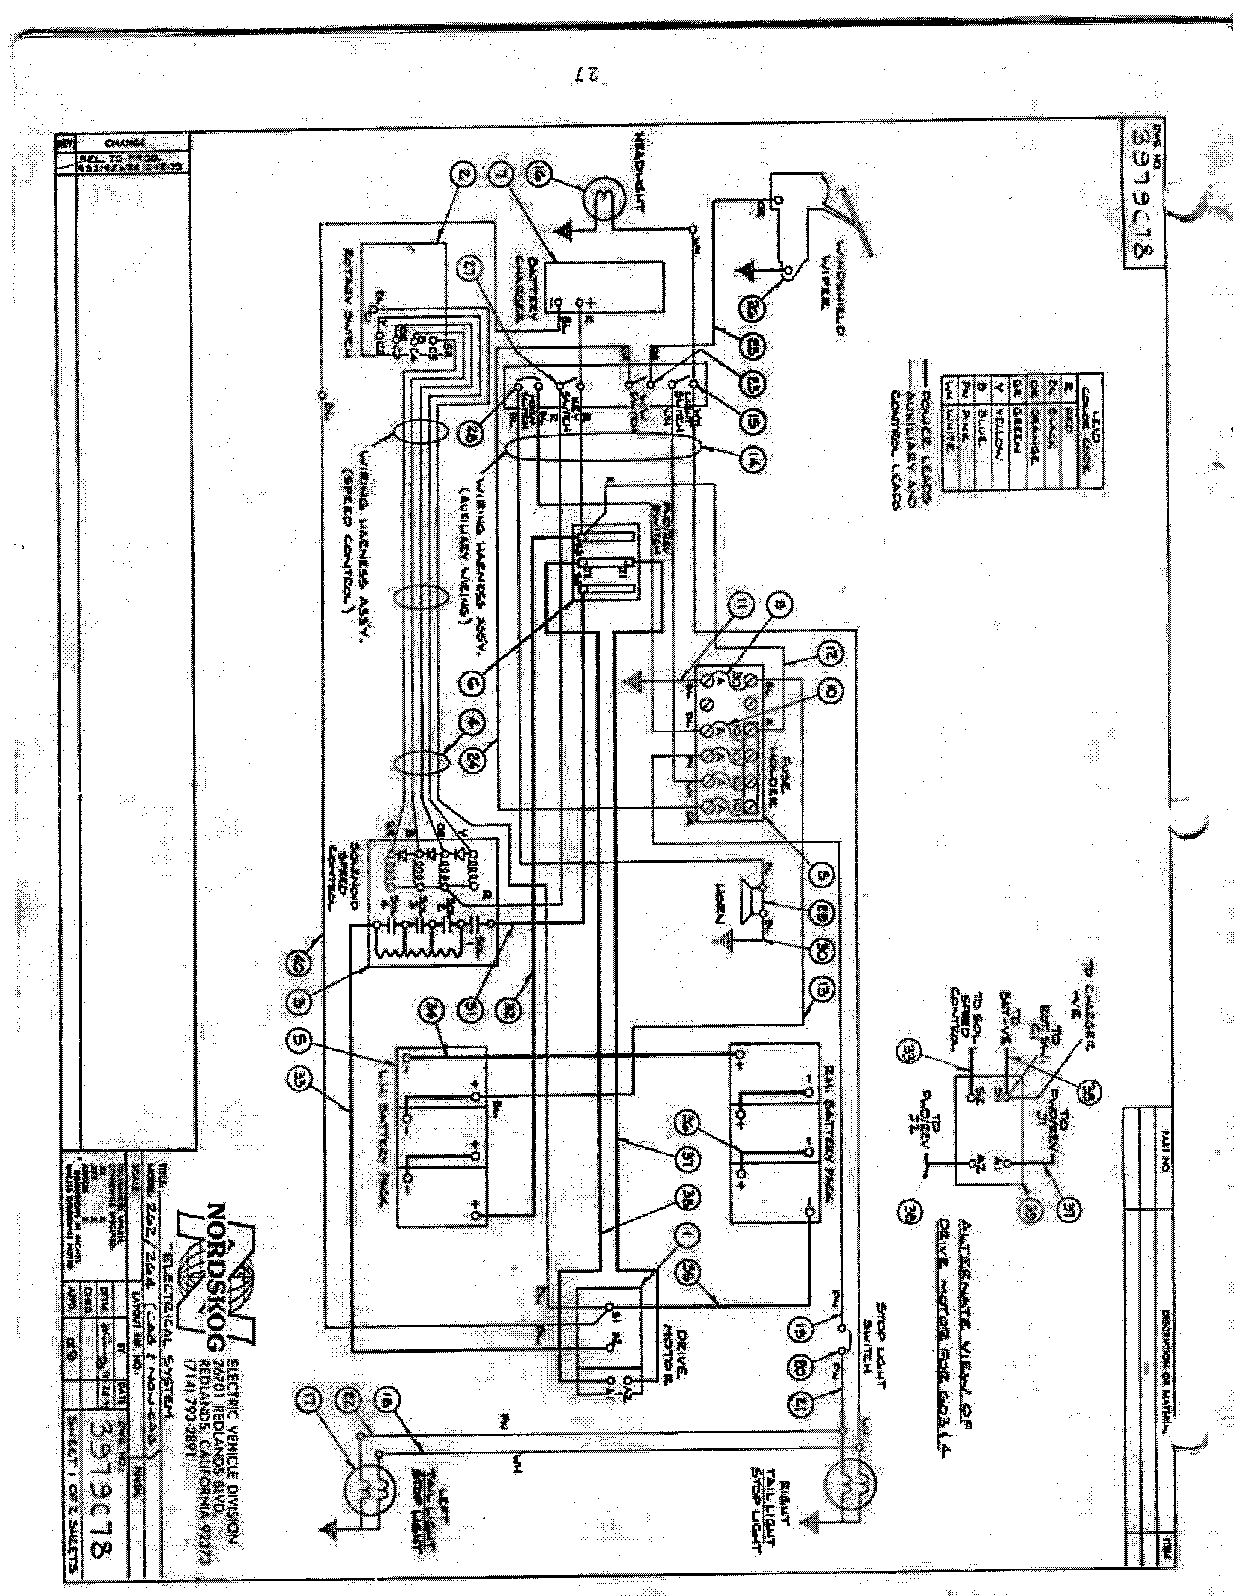 Melex 512 Golf Cart. Diagrams. Wiring Diagram Gallery